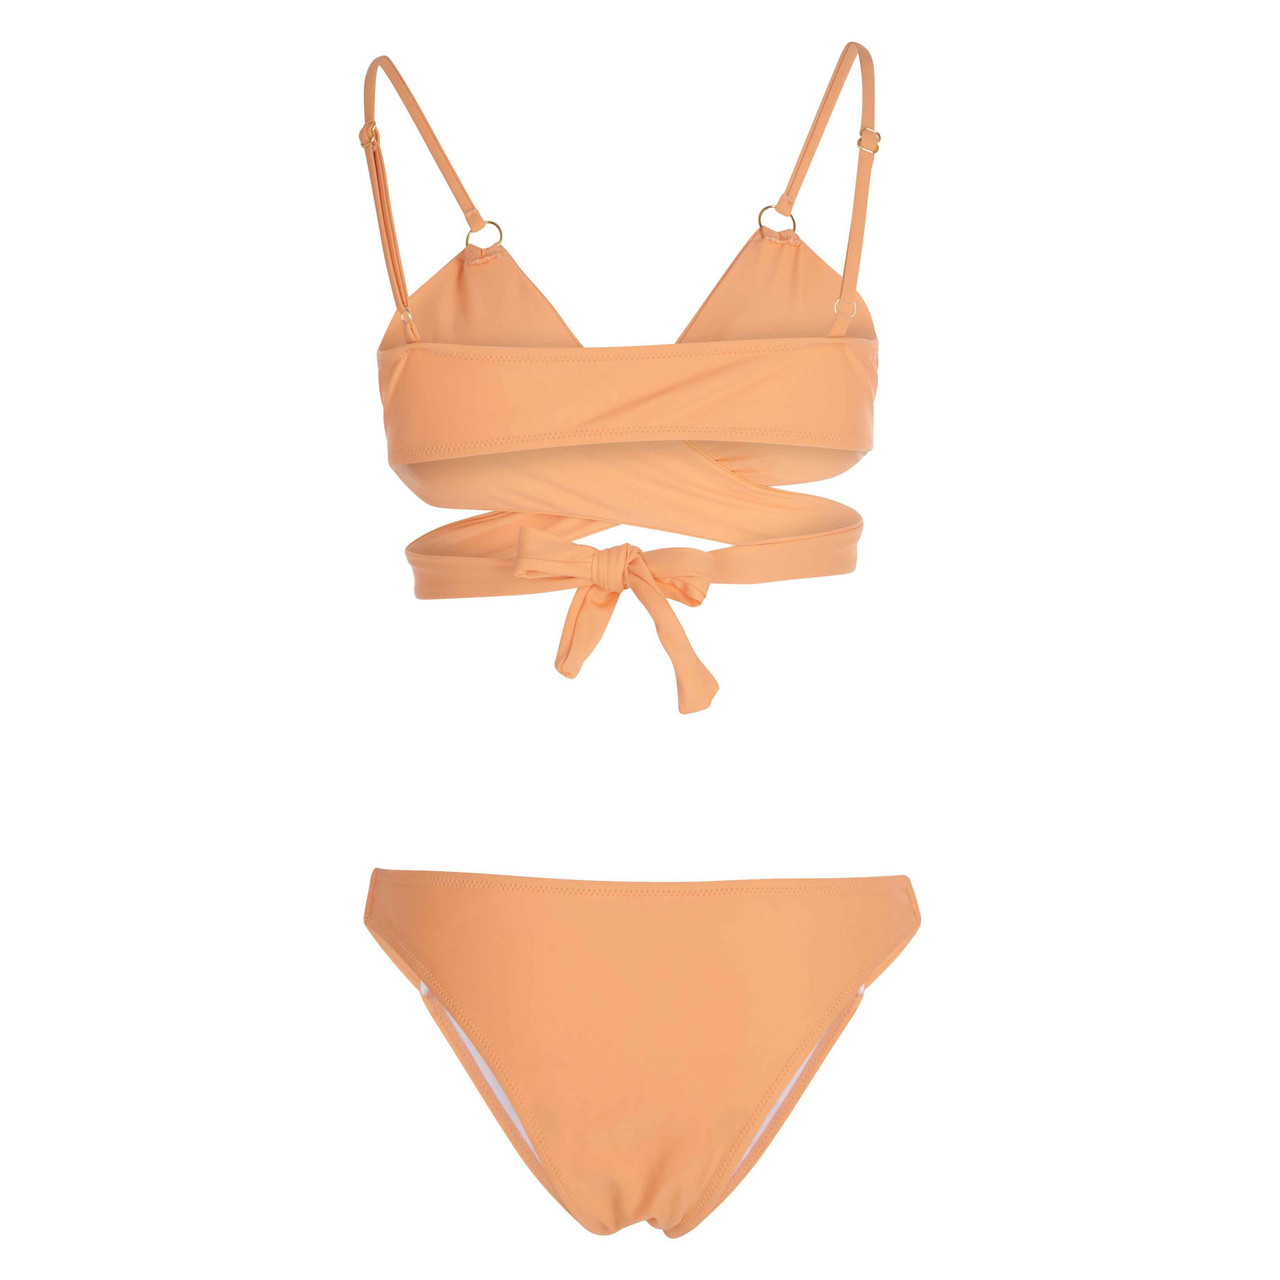 Women's Coral Wrap-Around Bikini Bathing Suit with Cut-Outs